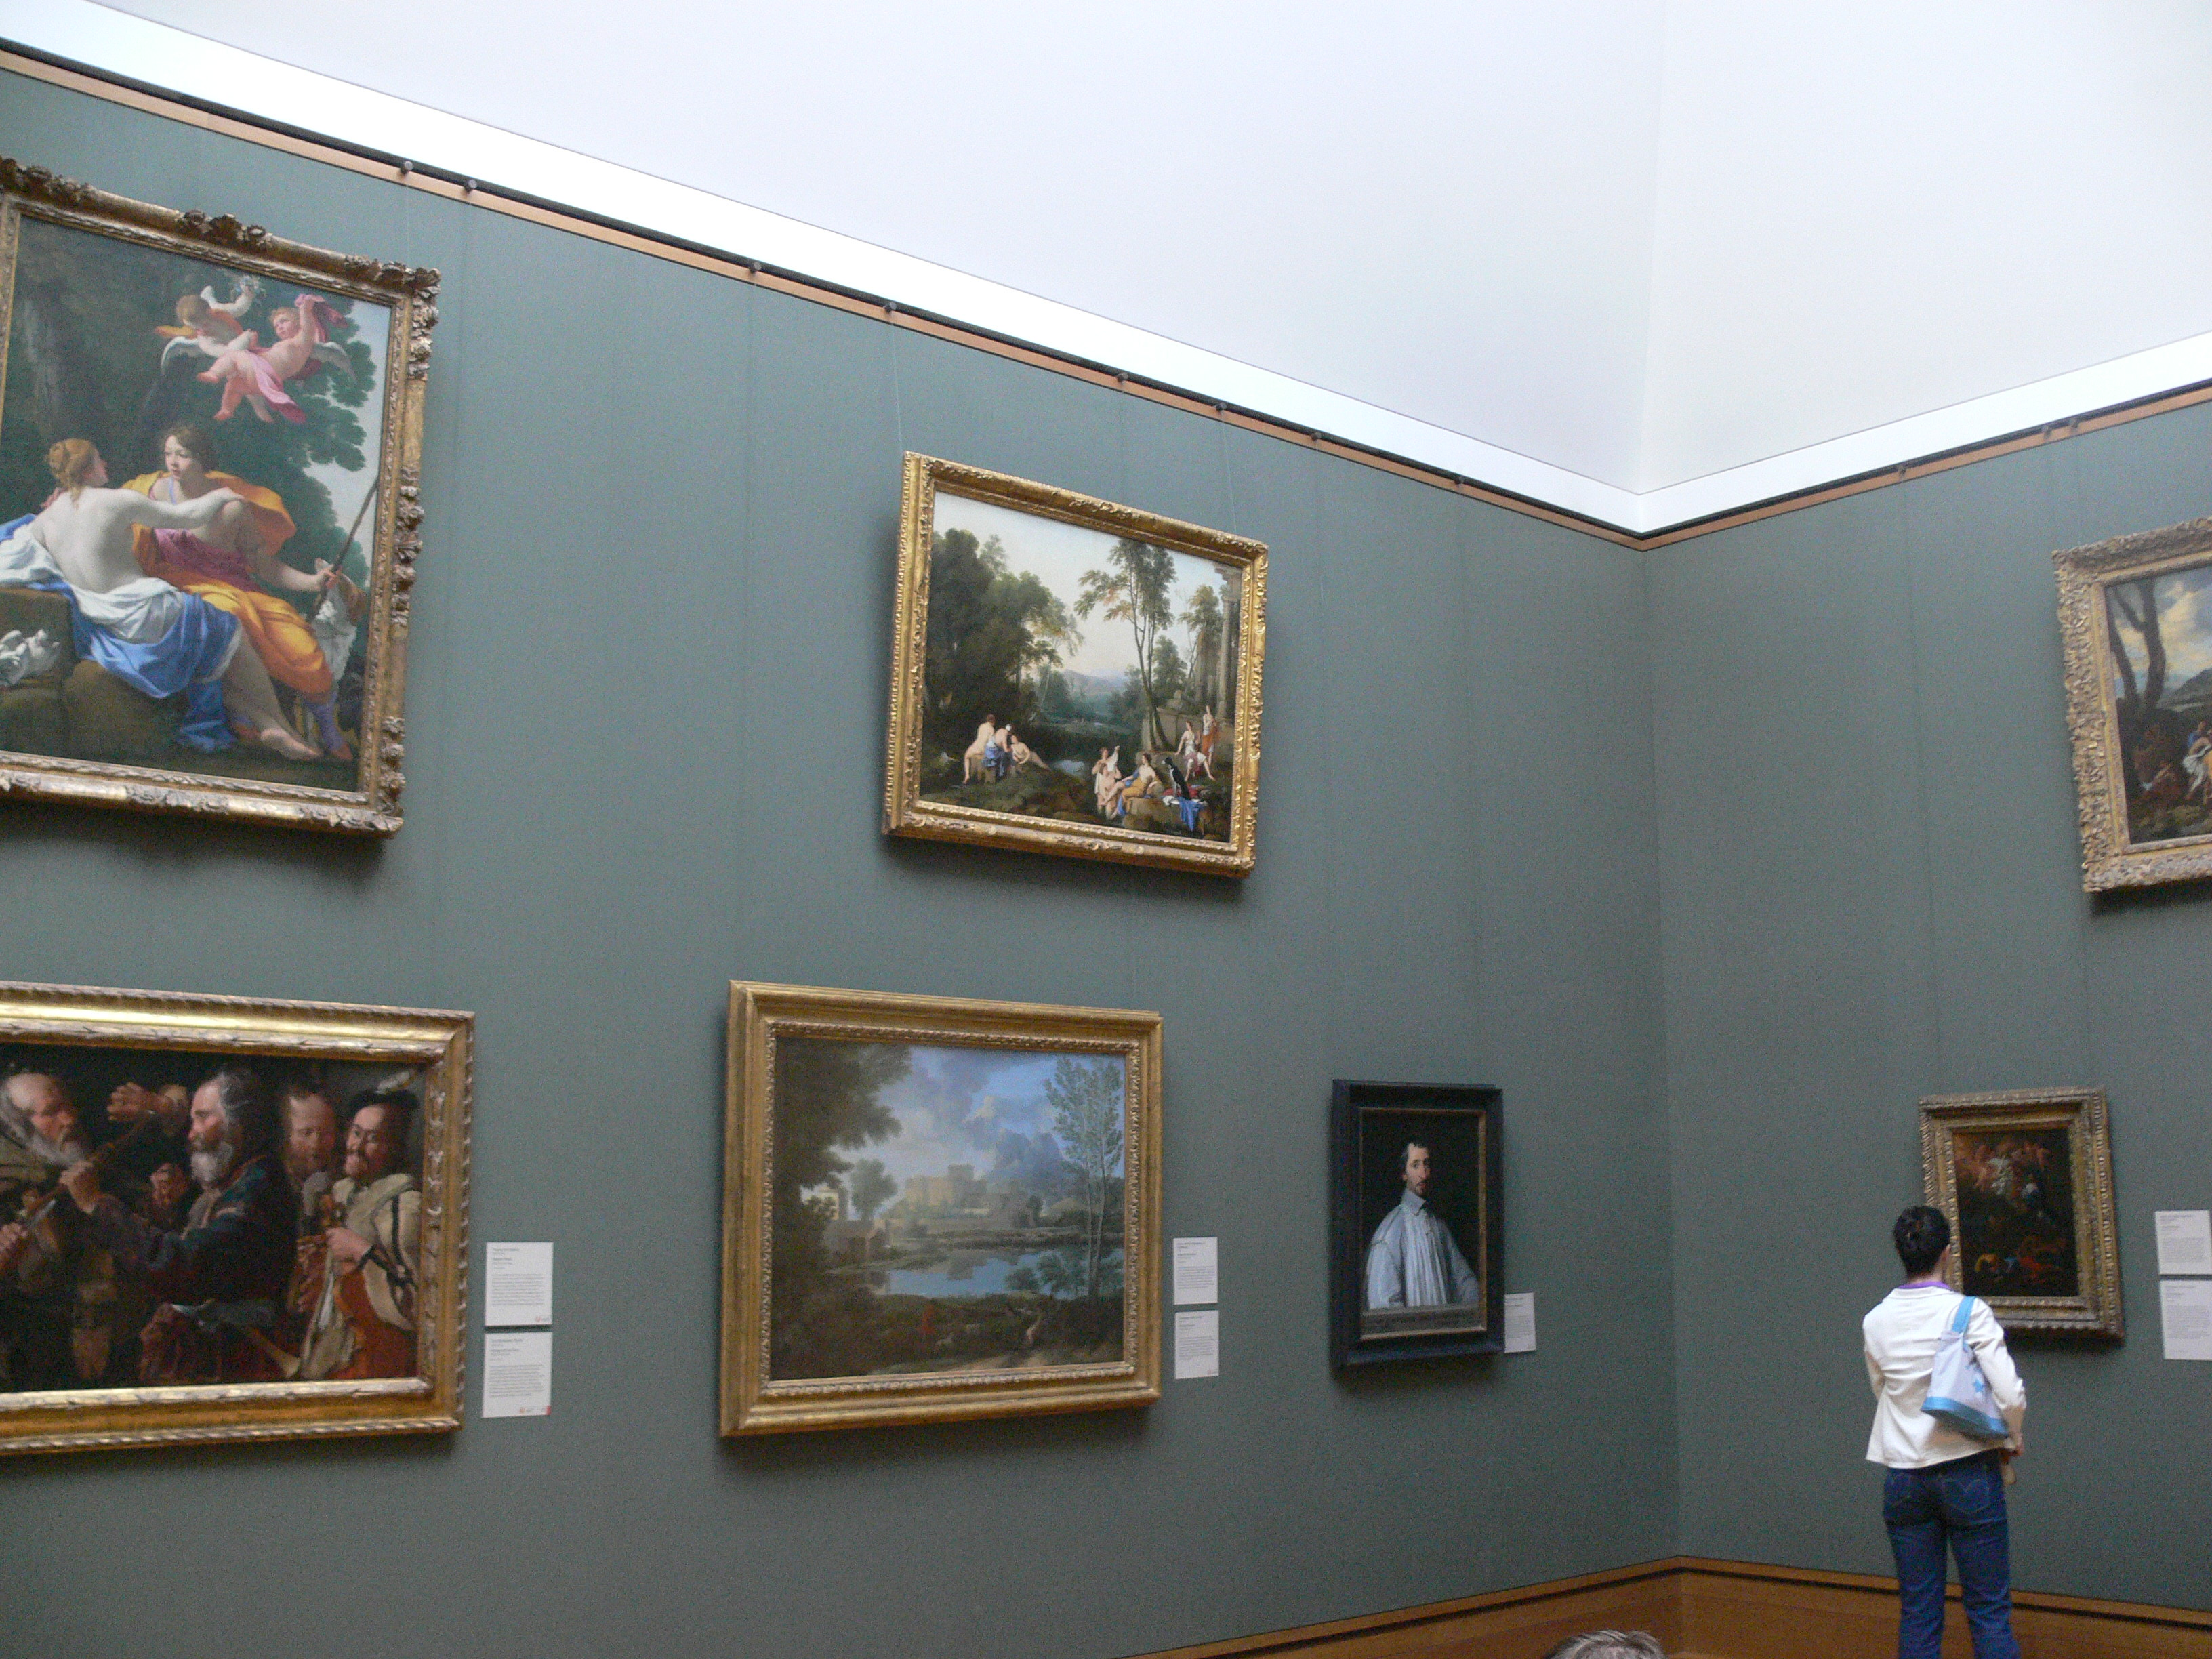 Old Paintings In A Room